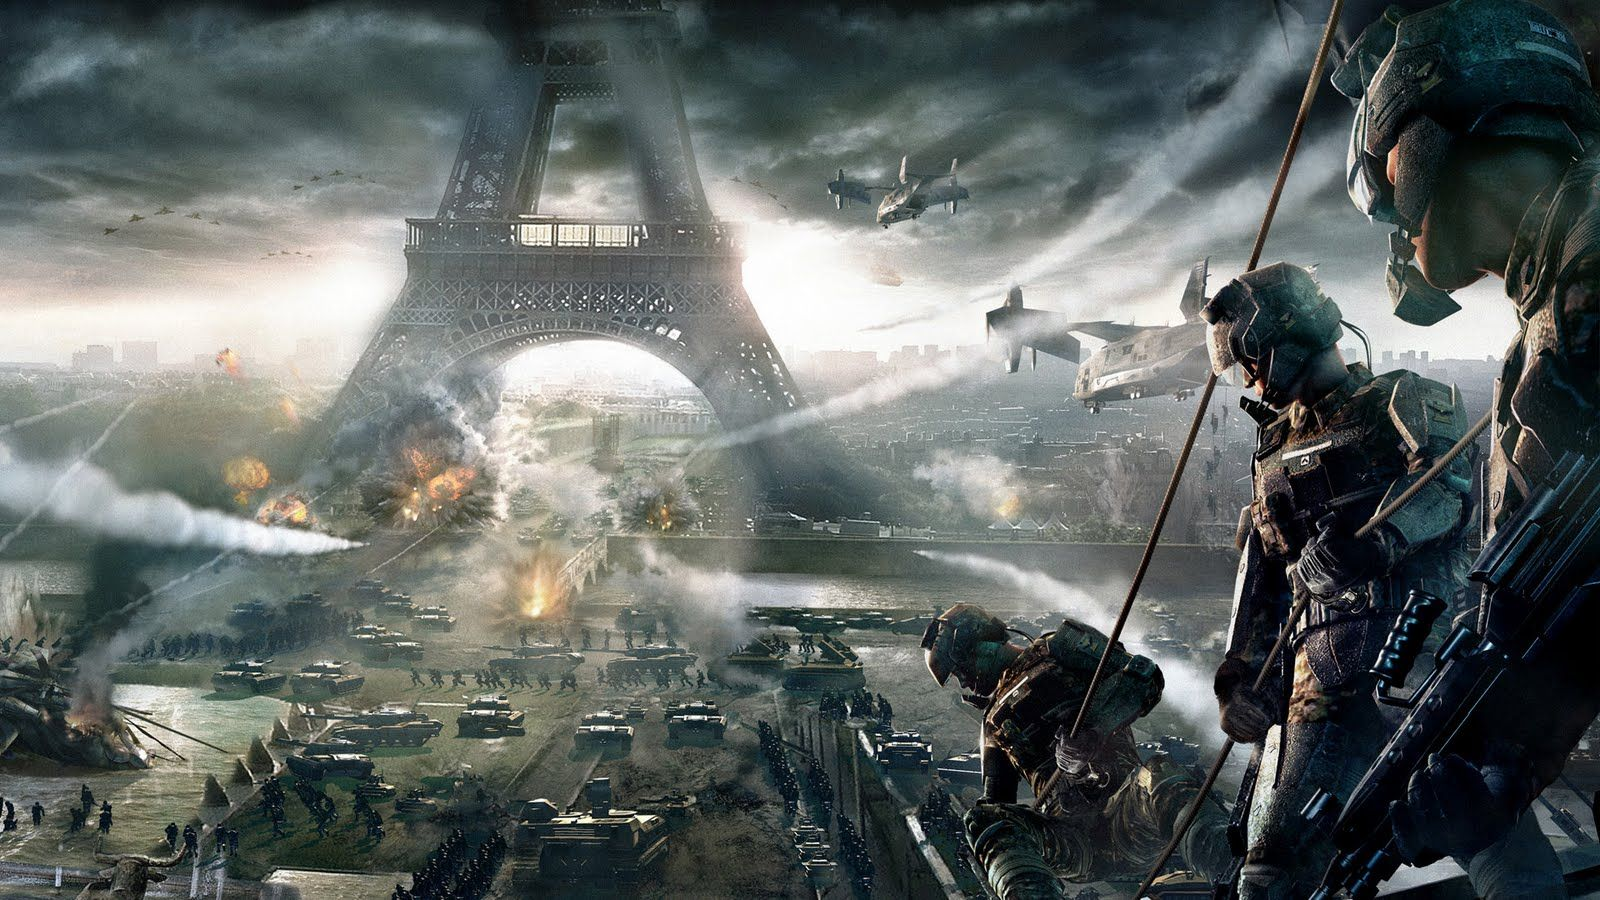 Pin By Mark On Gaming Wallpapers Call Of Duty Full Hd Wallpaper Wallpaper Pc